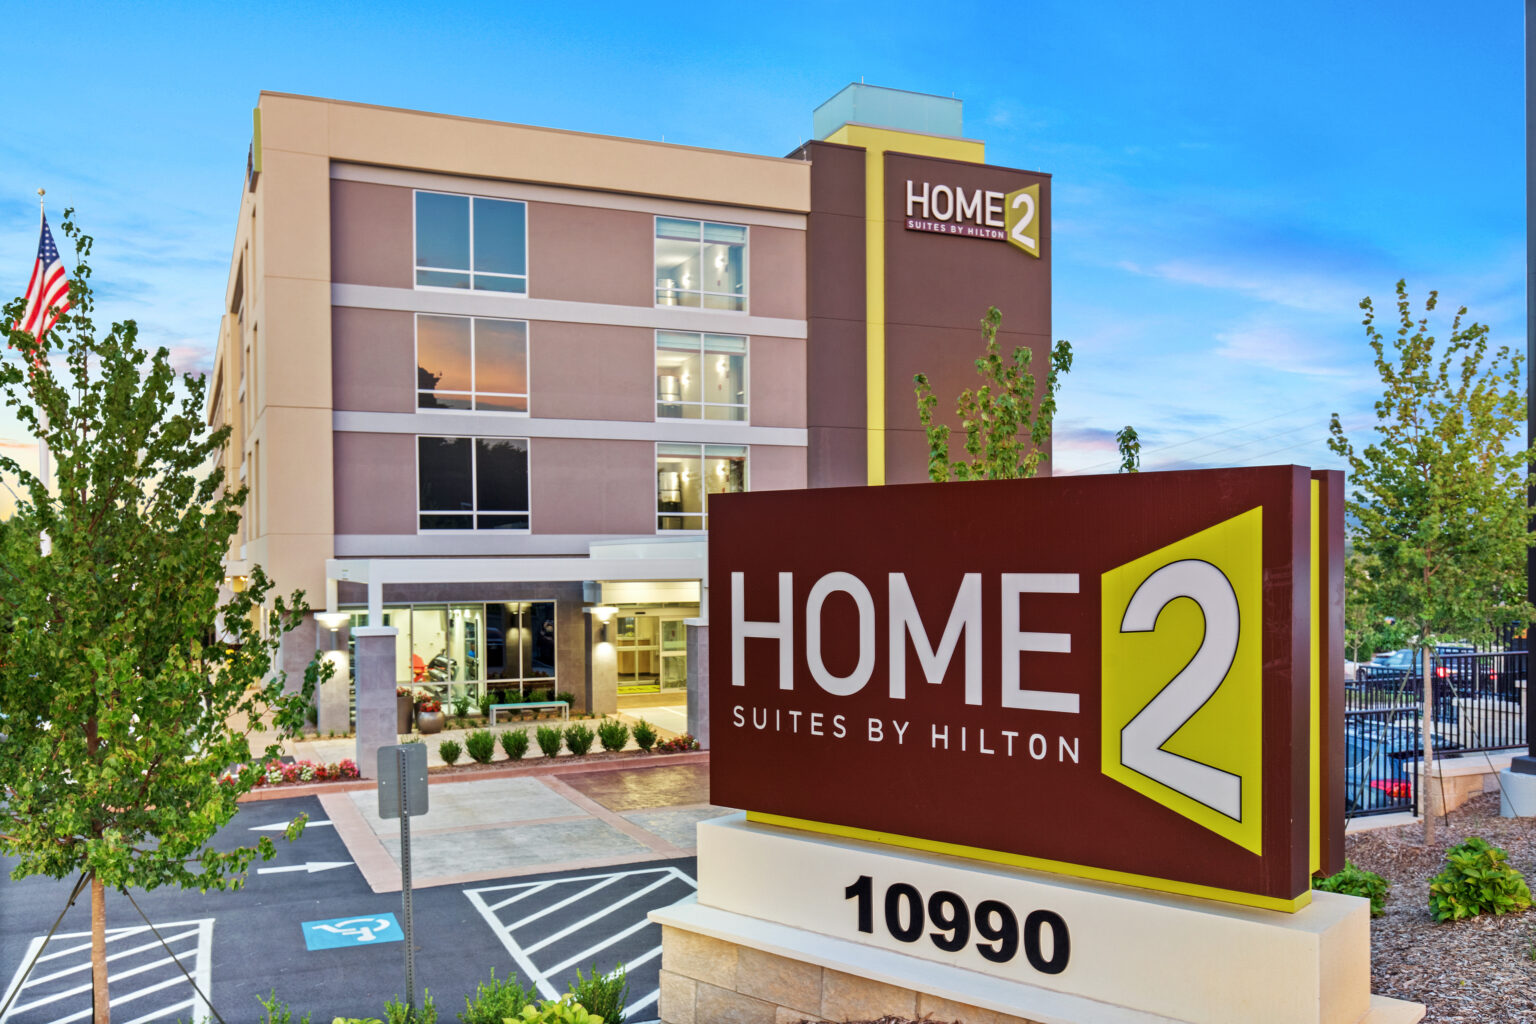 Home 2 Suite